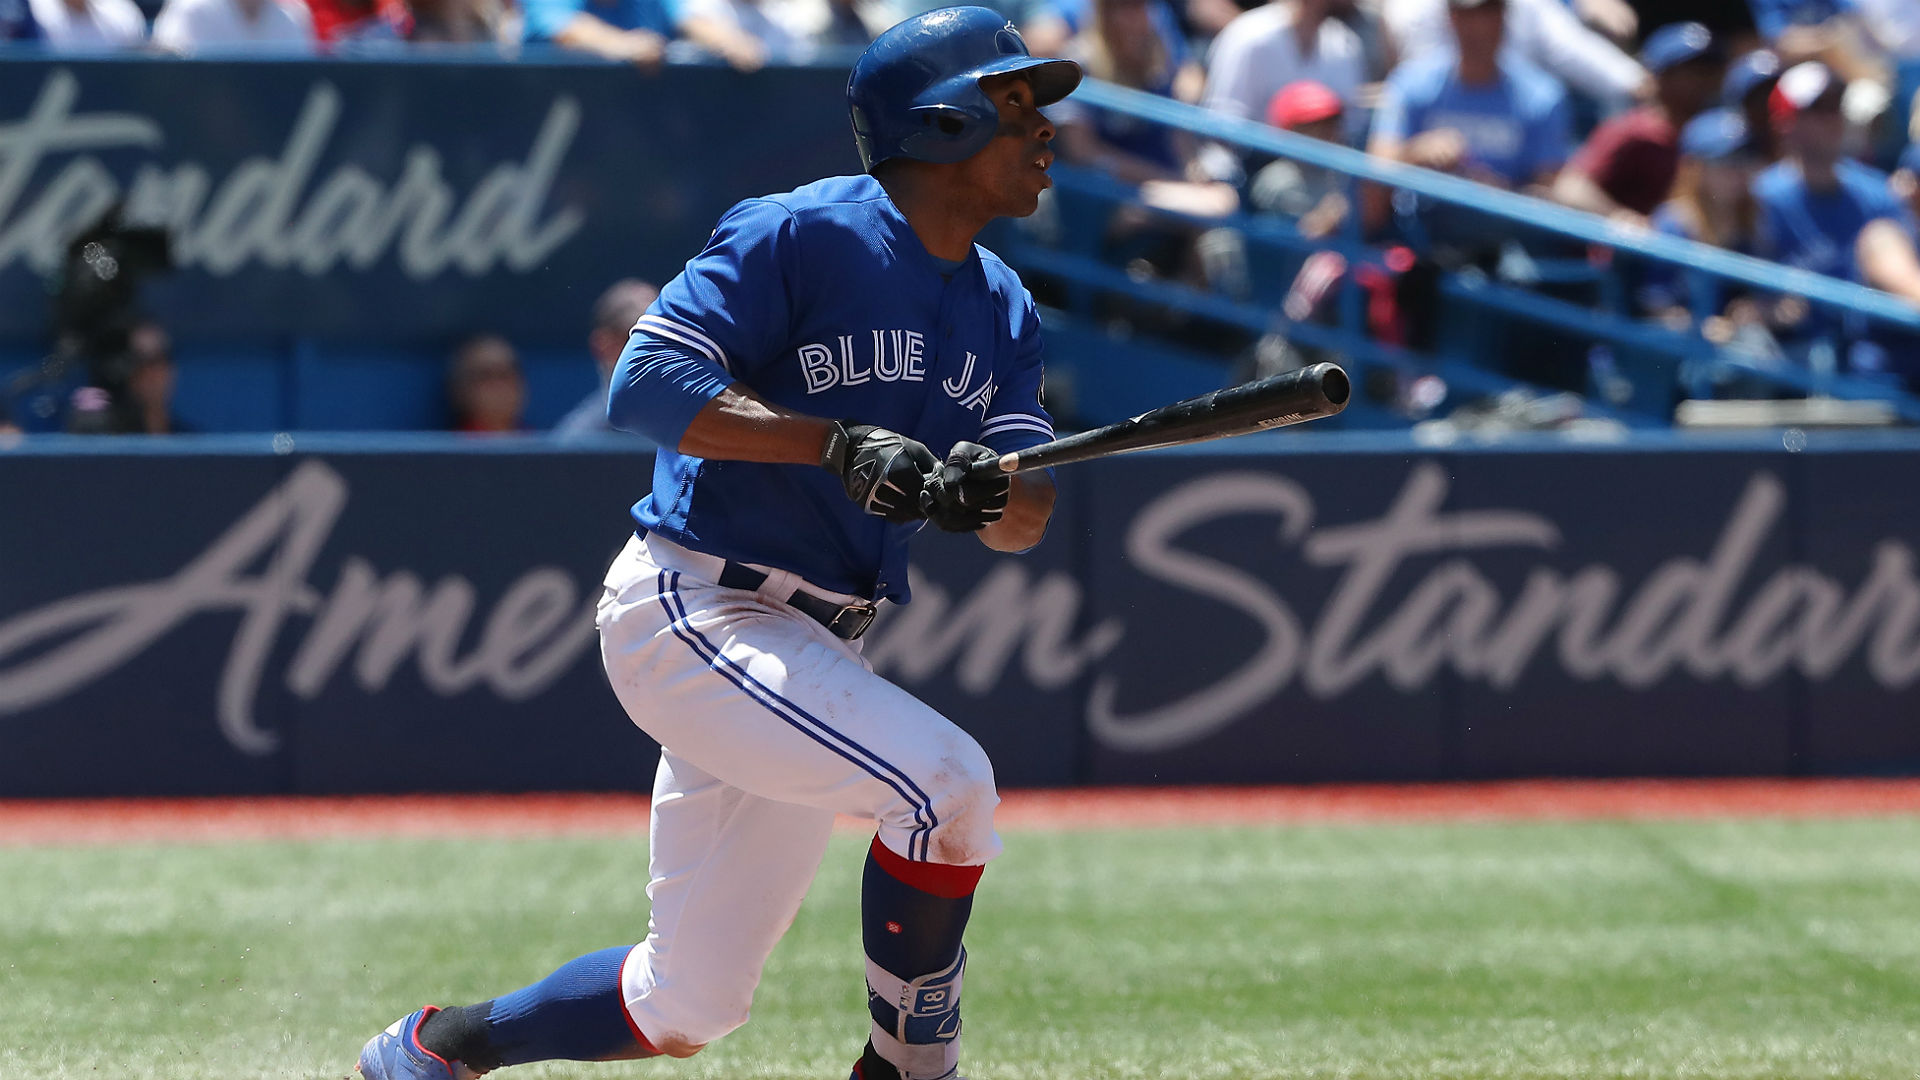 MLB trade rumors: Yankees, Phillies interested in Blue Jays outfielder Curtis Granderson